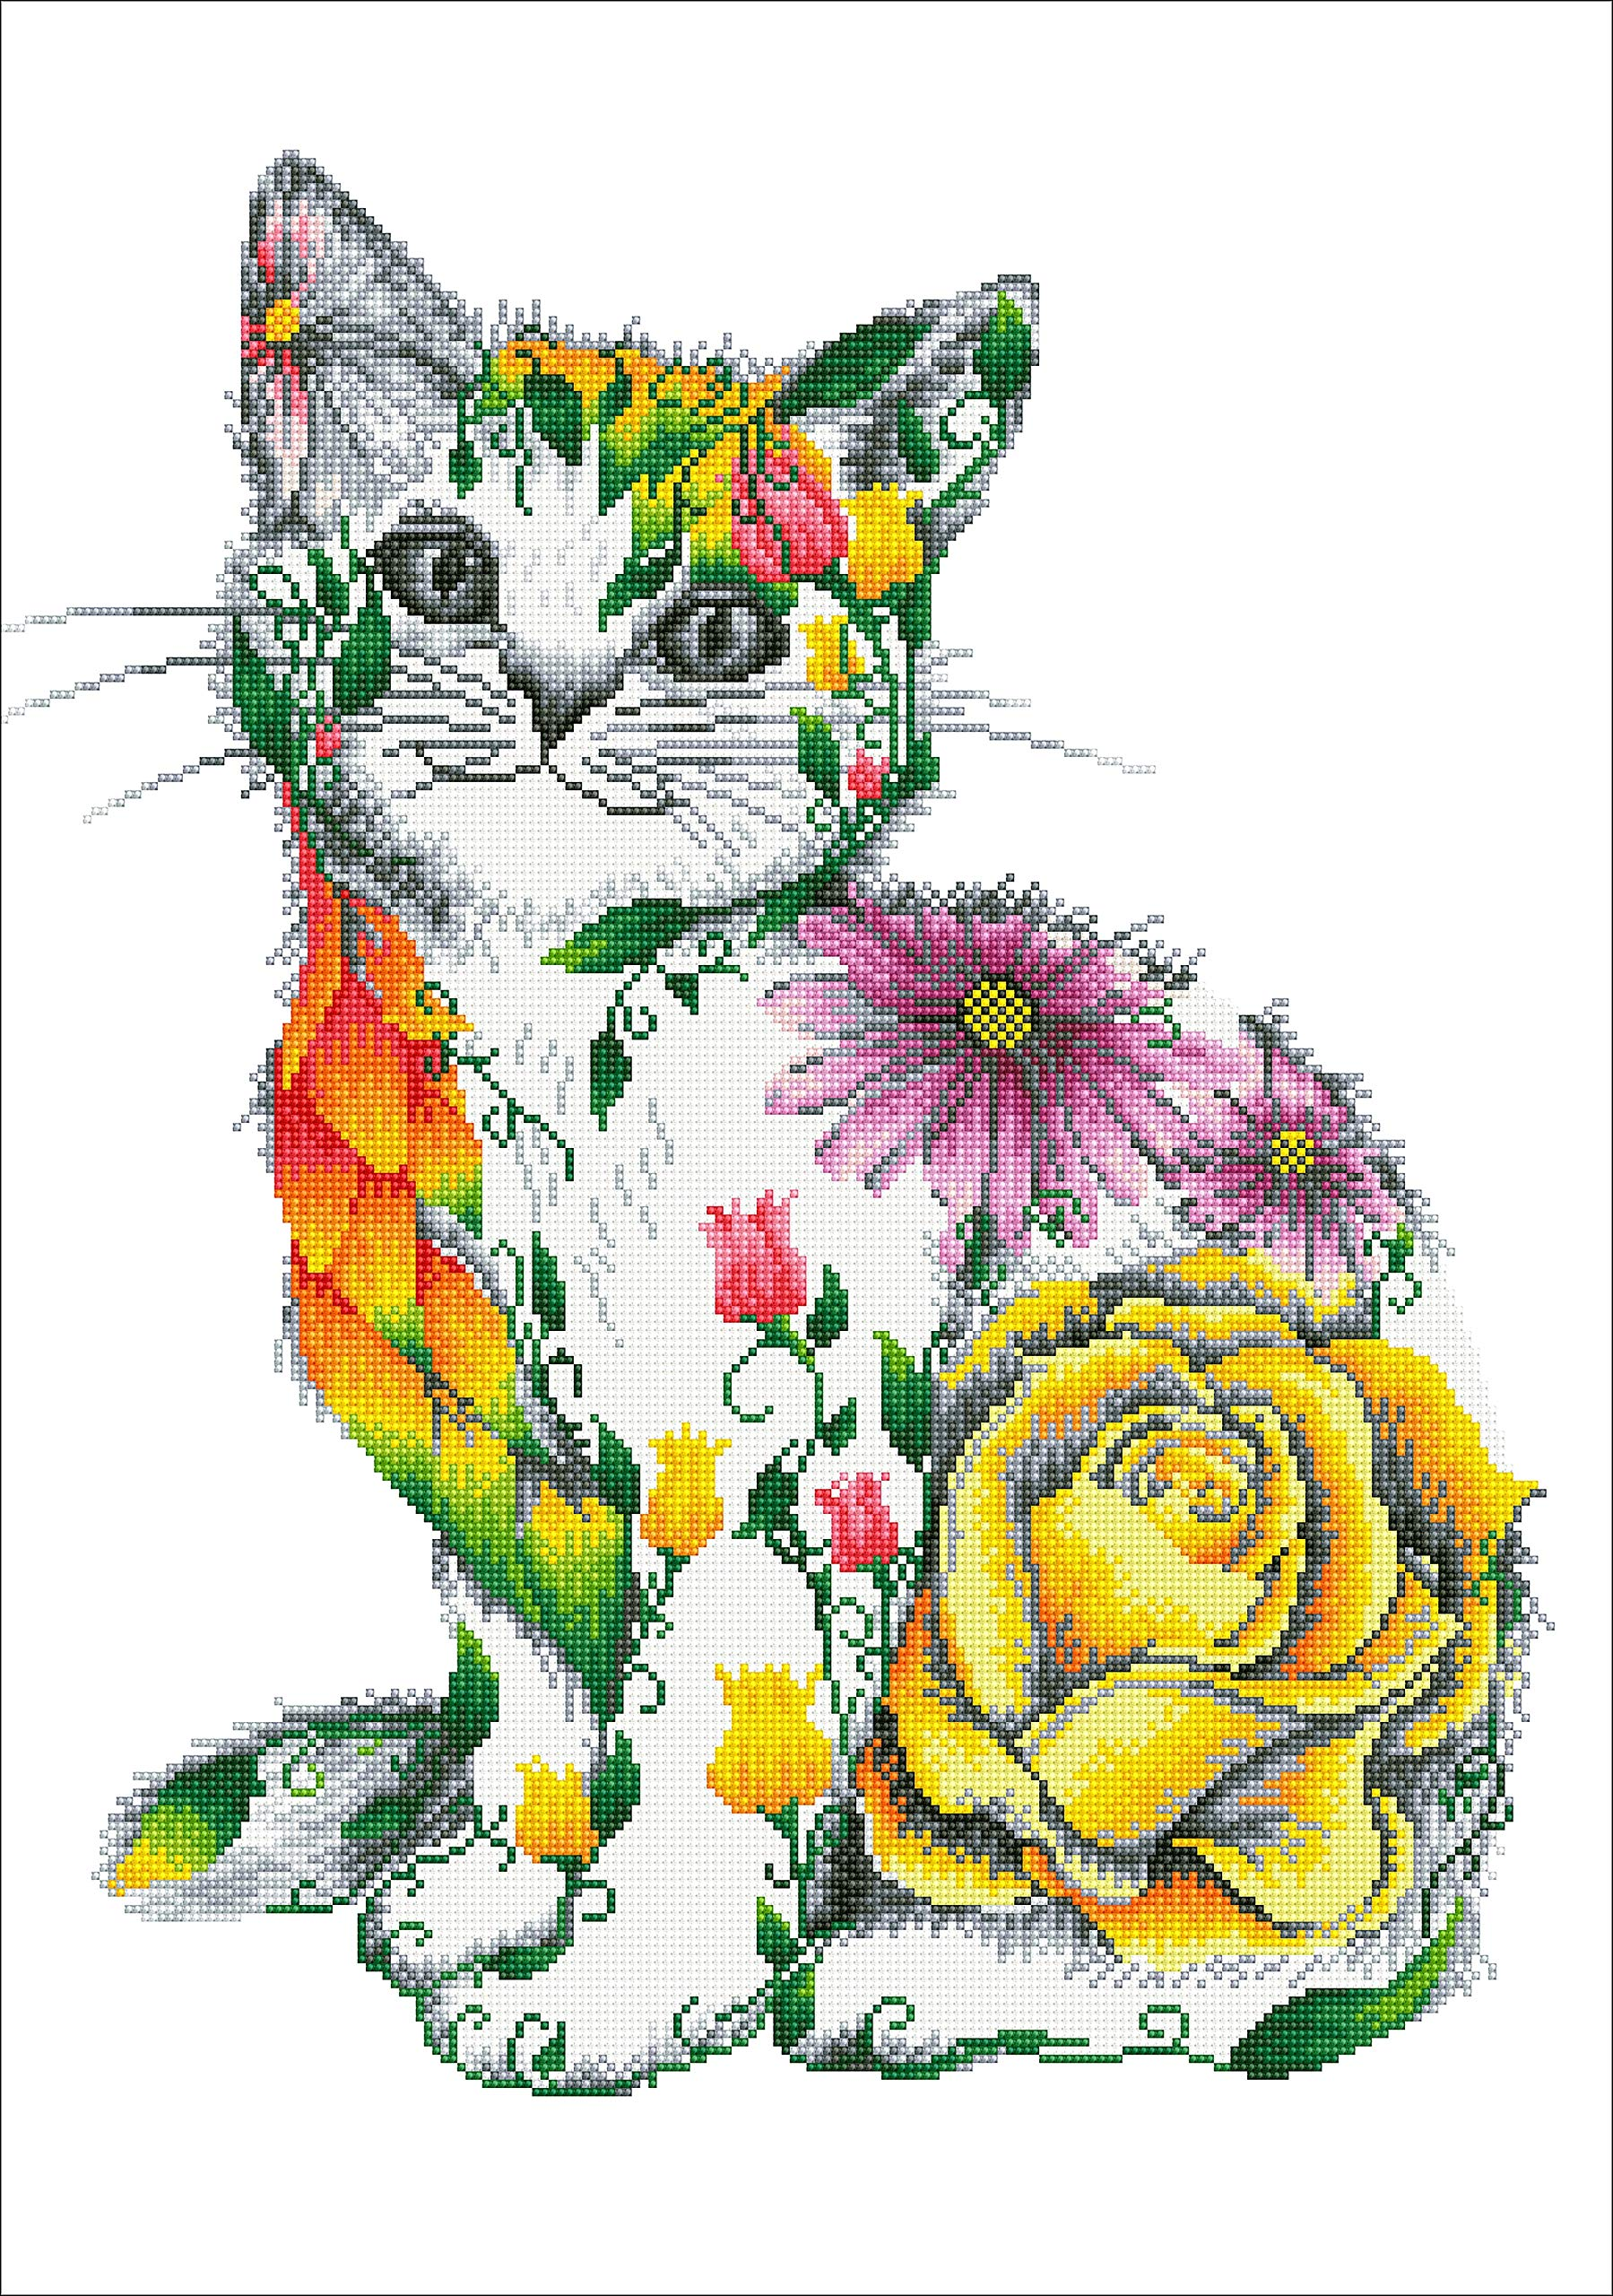 Needleart World Diamond Dotz Diamond Embroidery Facet Art Kit 21.7''X30.7''-Flower Puss